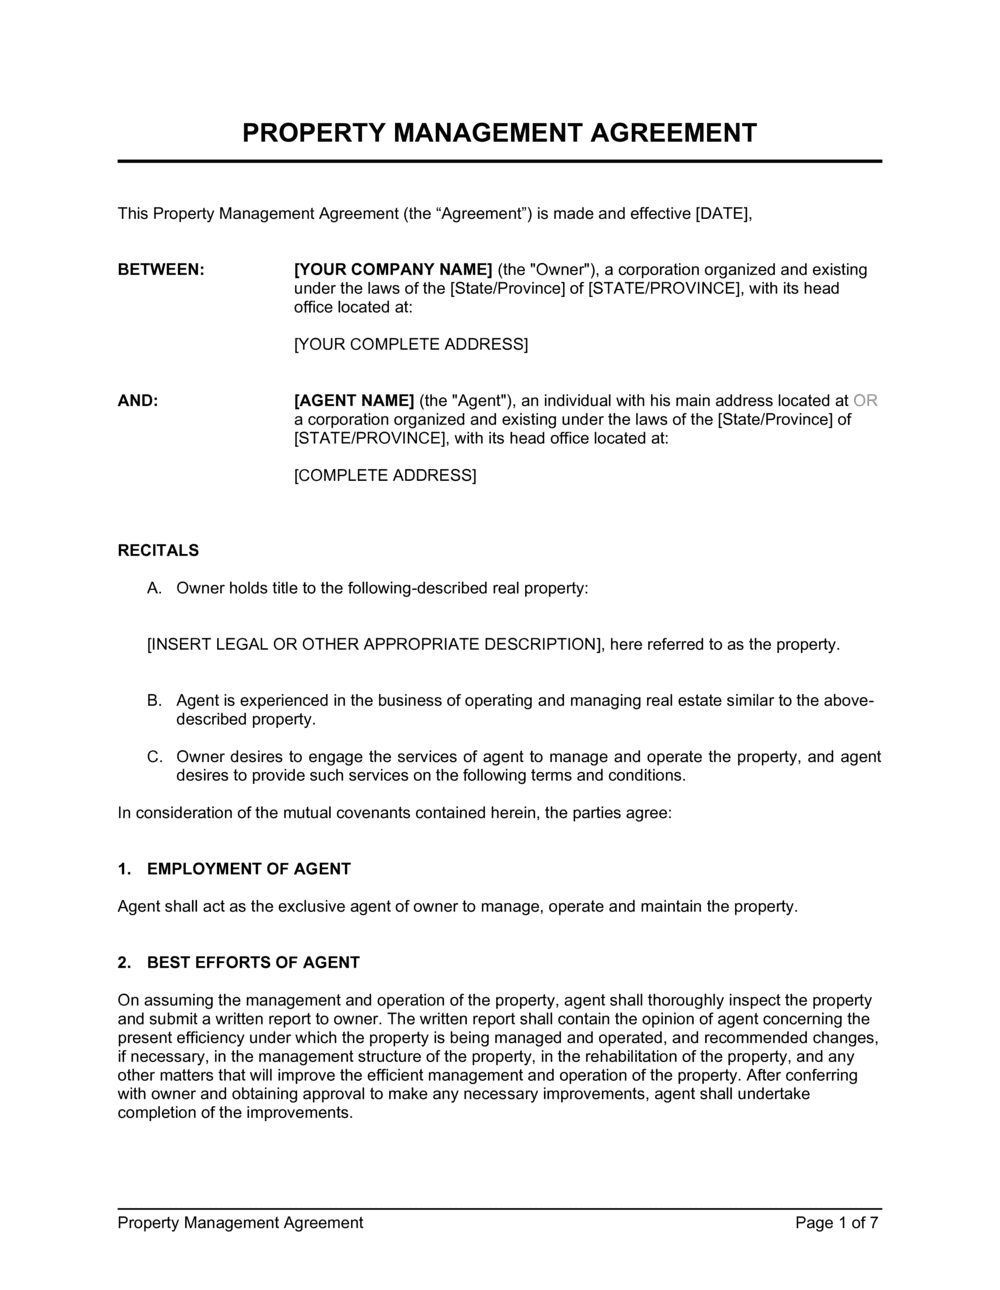 Business-in-a-Box's Property Management Agreement Template